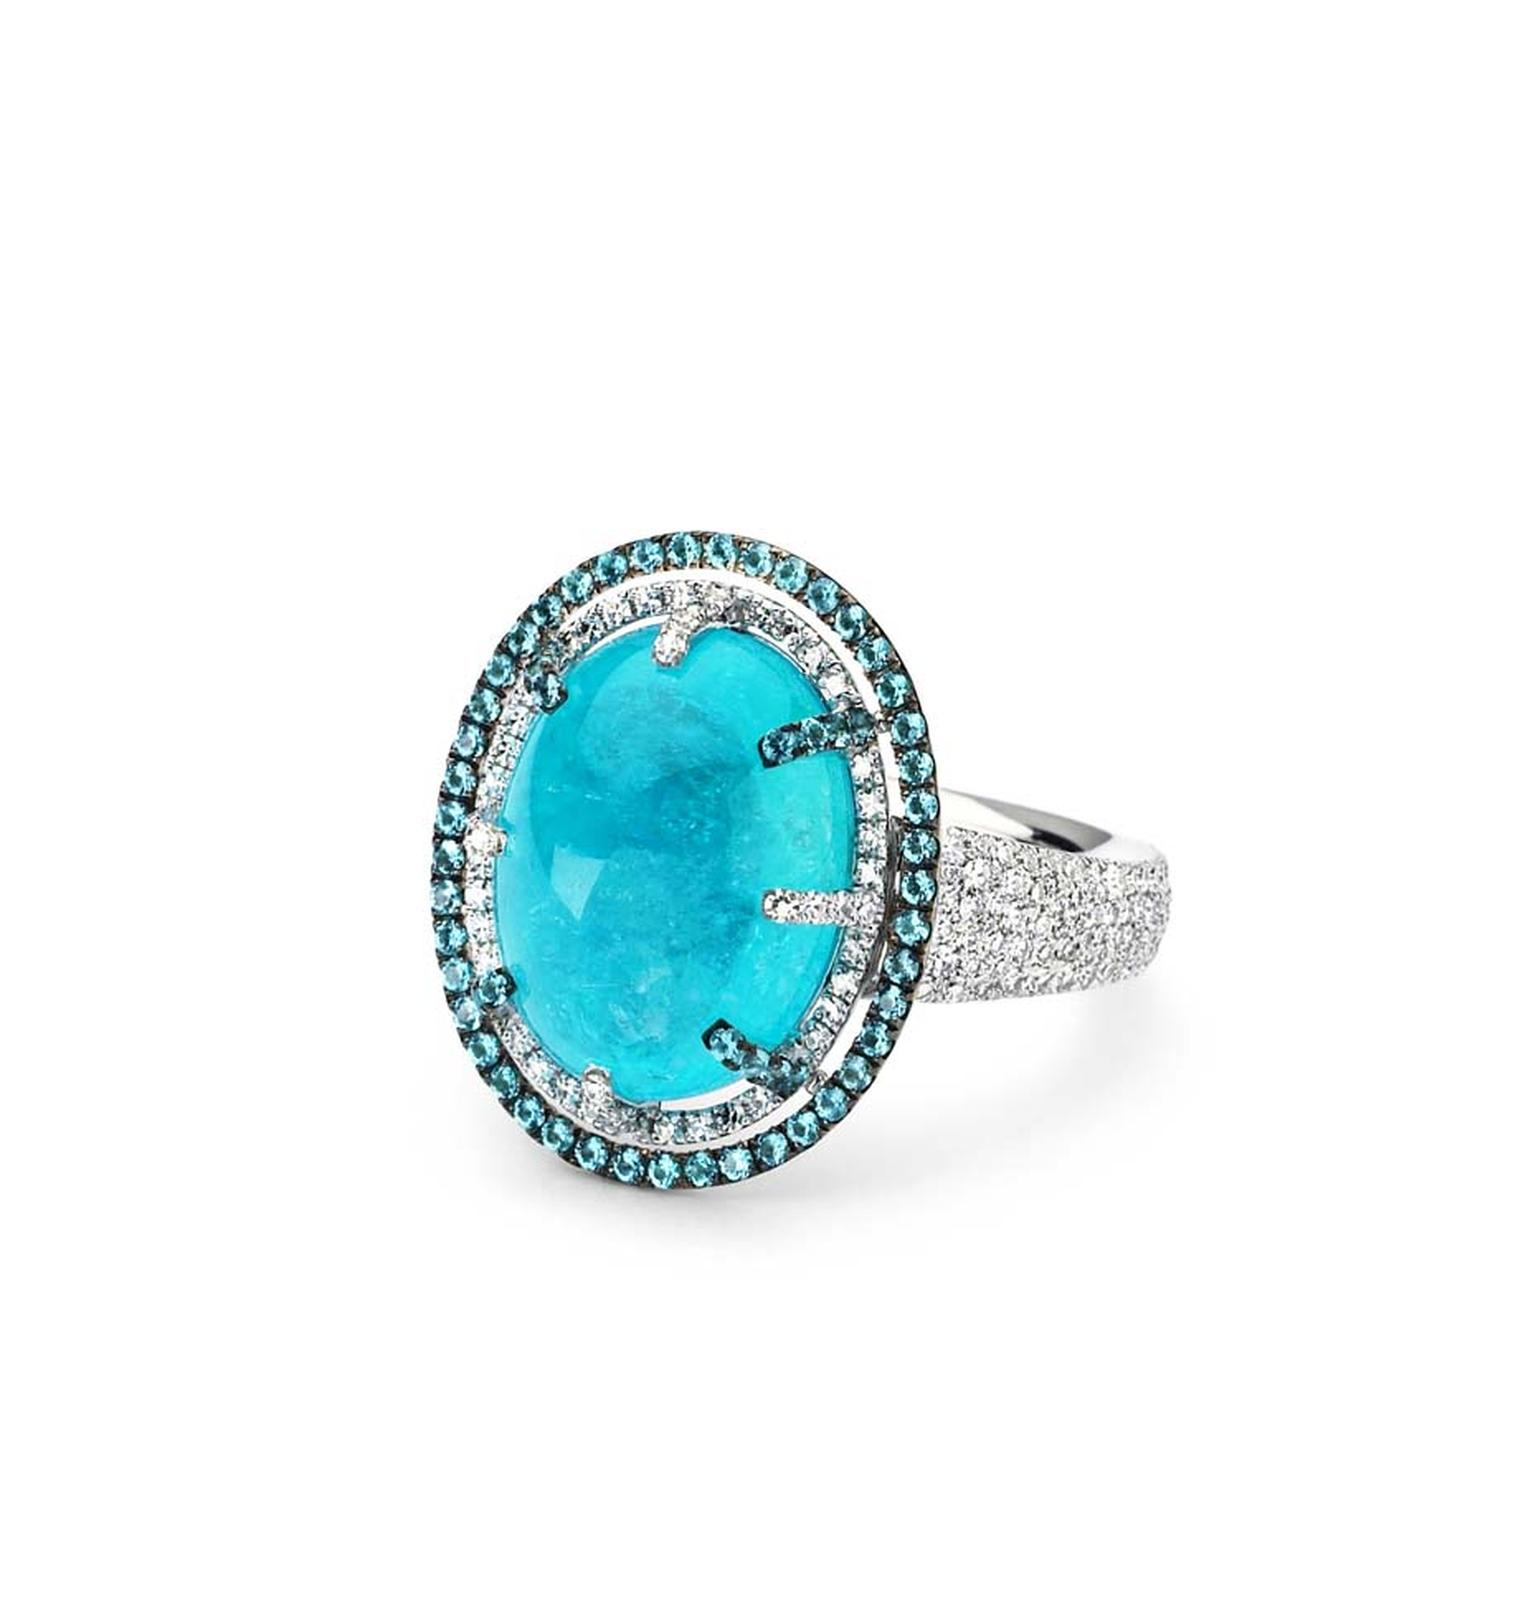 Martin Katz Paraiba tourmaline cocktail ring in white gold with diamonds.